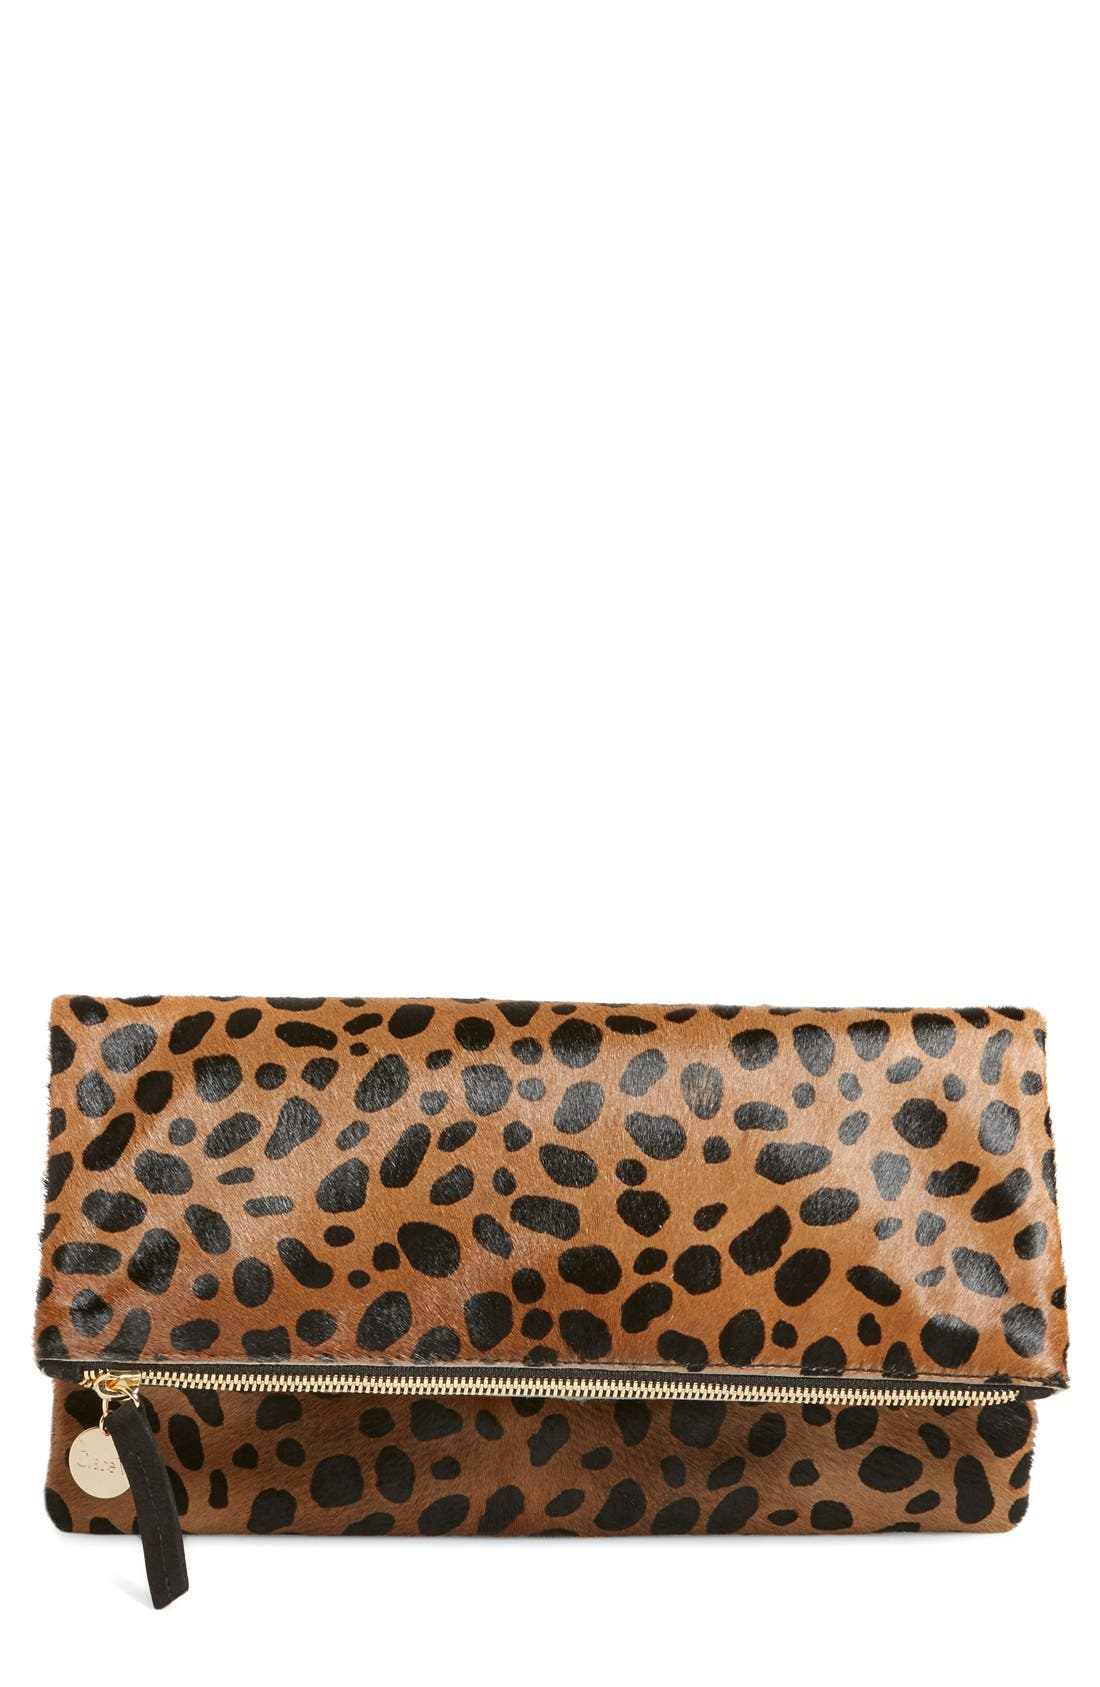 Alternate Image 1 Selected - Clare V. Genuine Calf Hair Leopard Print Foldover Clutch